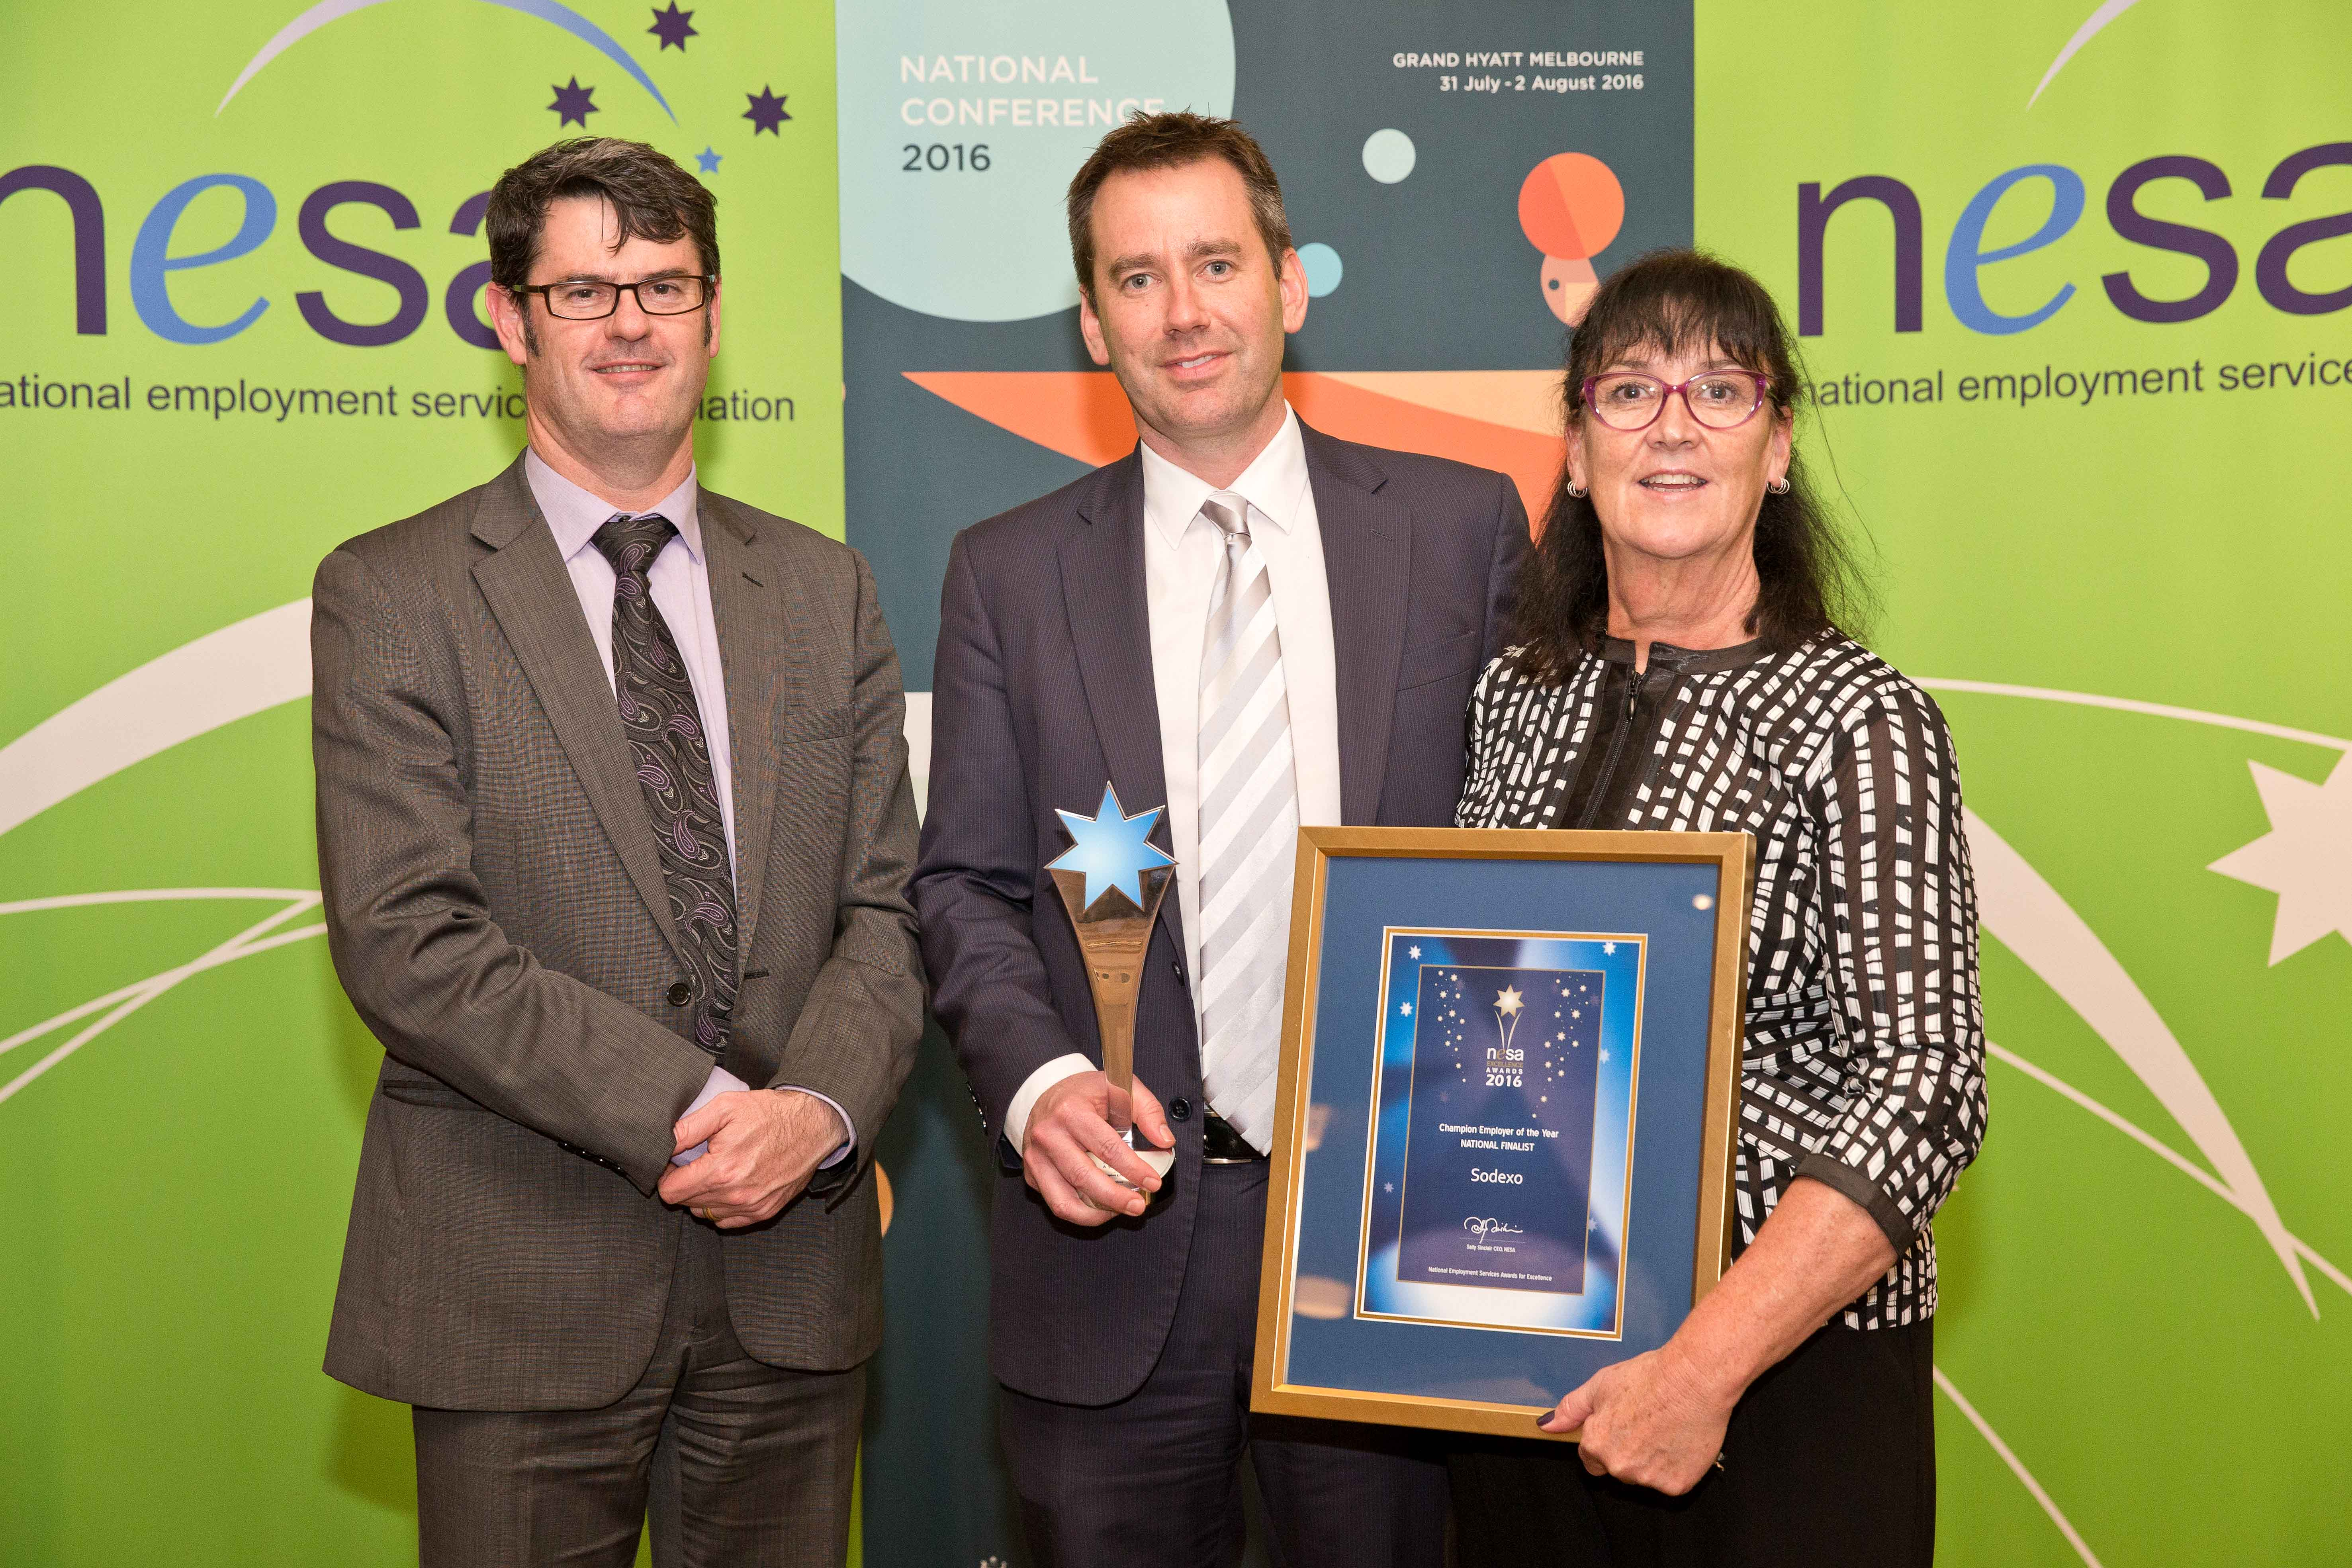 Nick O'Callaghan (Country President, Sodexo Australia), Wendy Dawson (GM Indigenous & Community Engagement) with Martin Hehir, Deputy Secretary of the Department of Employment, who presented the award.